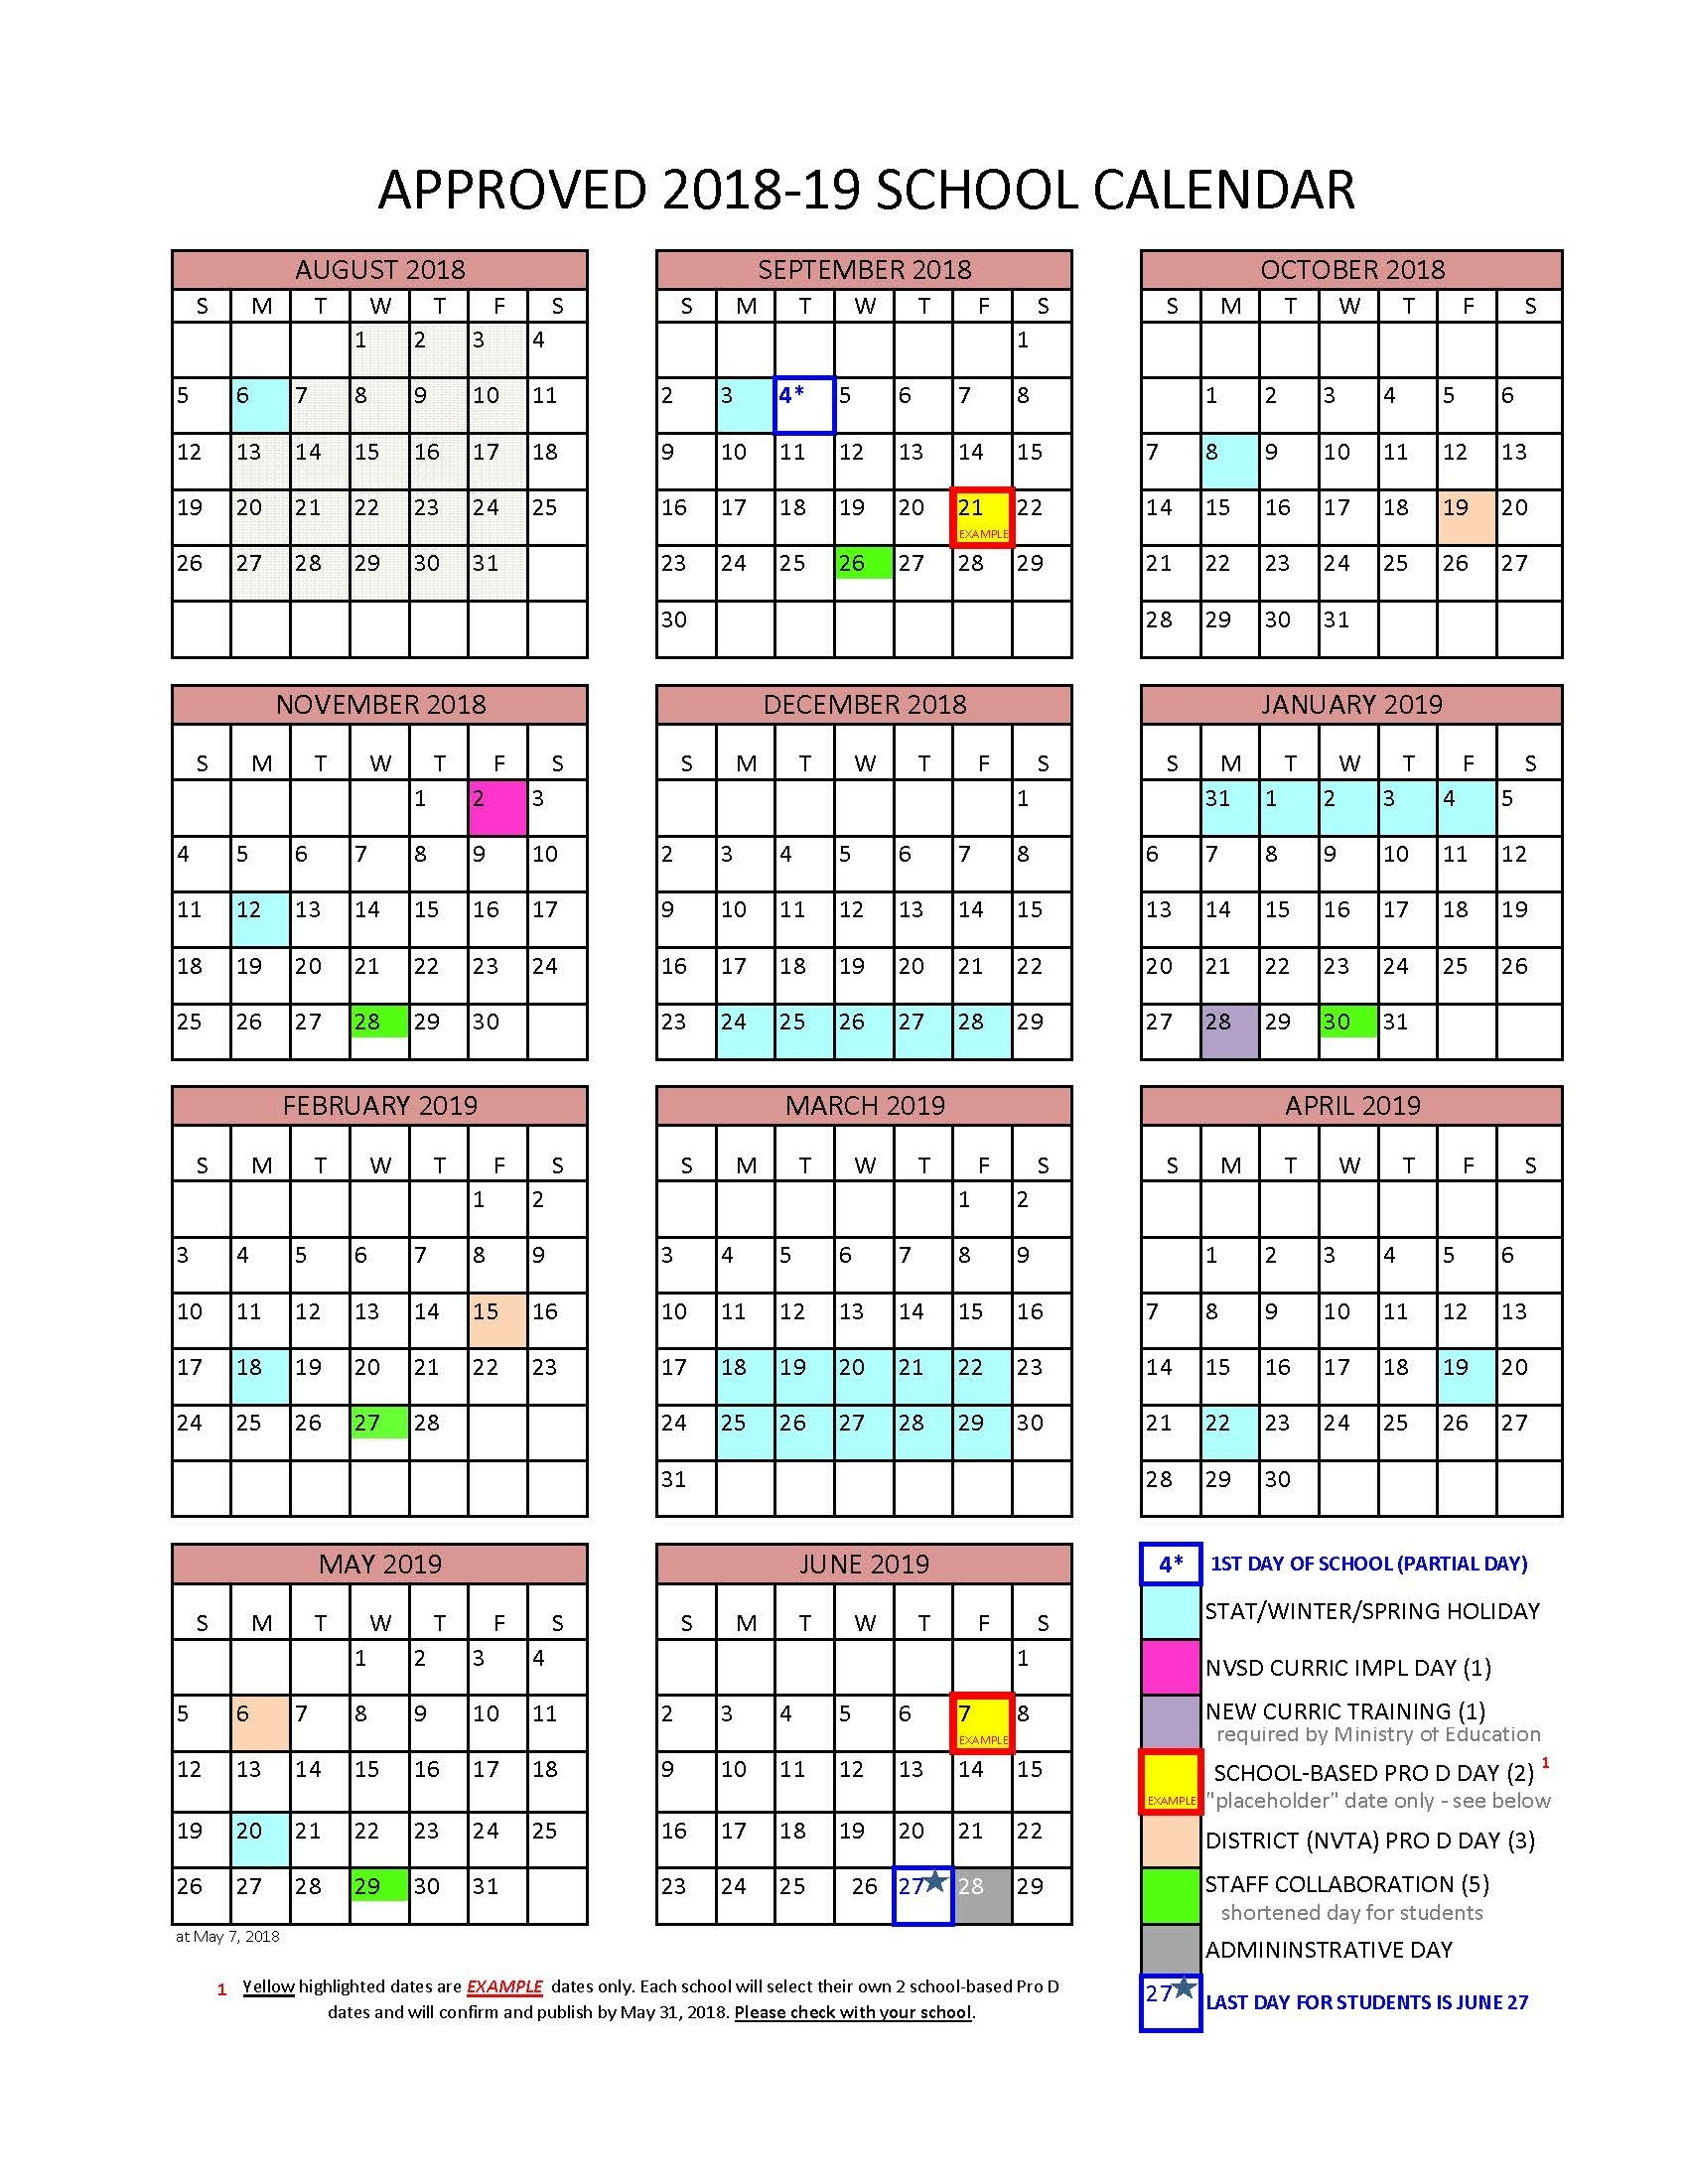 District Calendar - North Vancouver School District_School Calendar Western Cape 2020